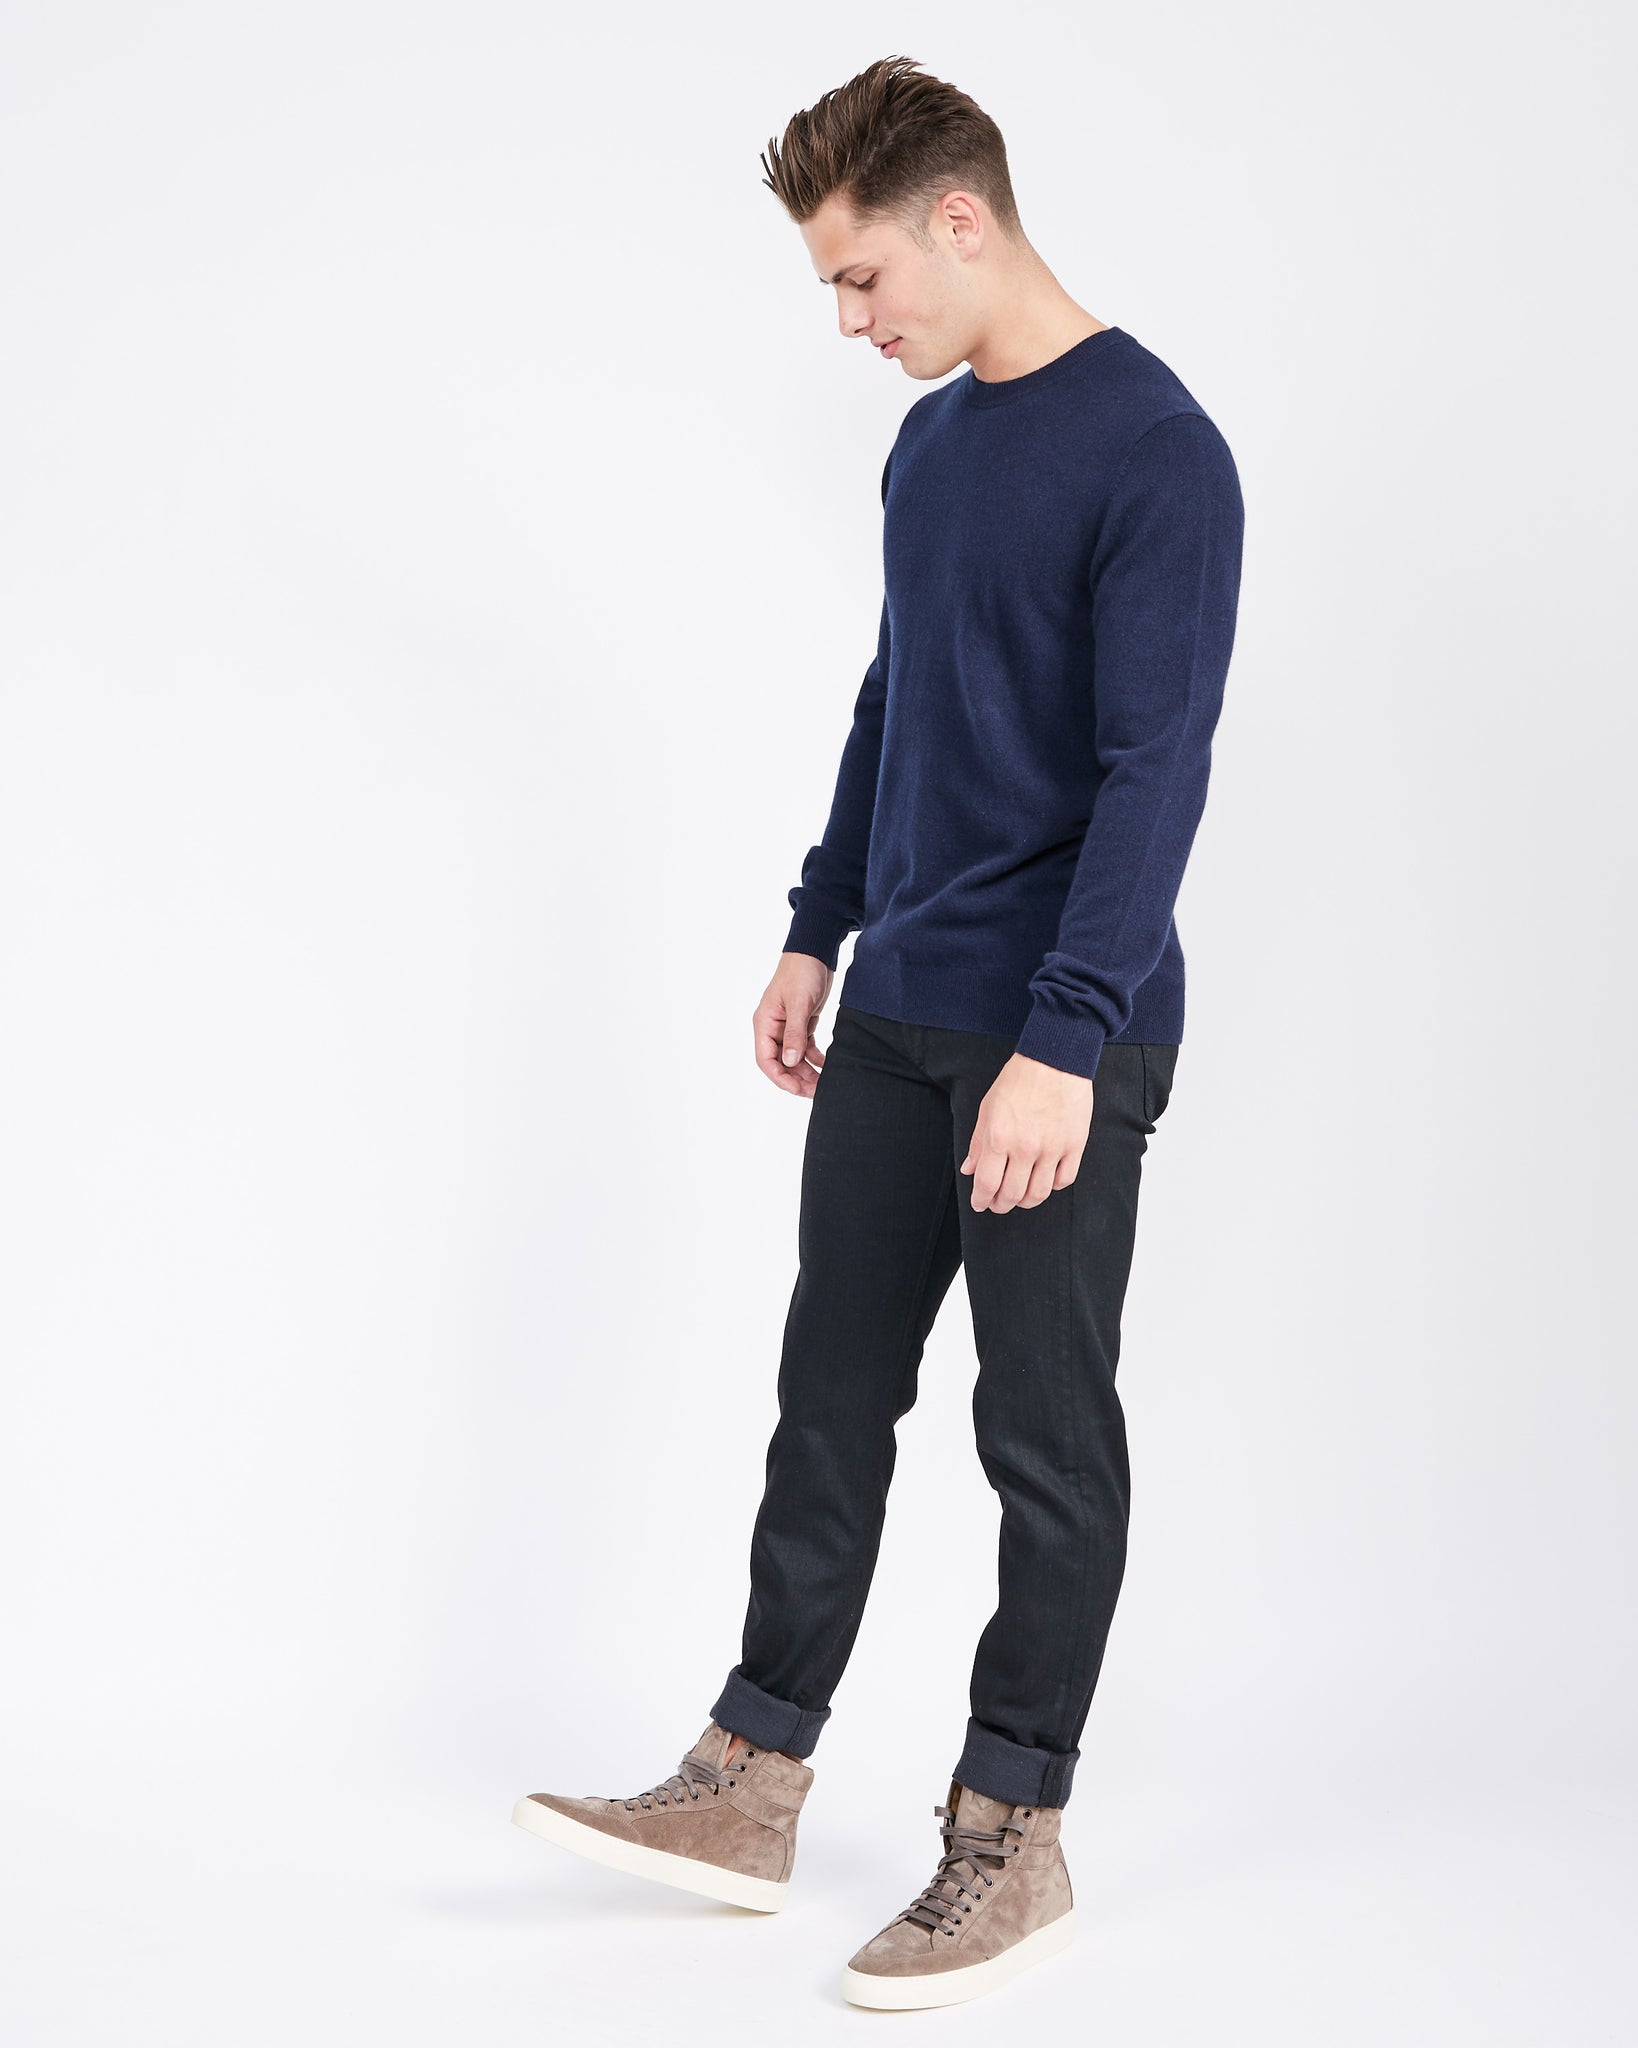 Best Cashmere Sweater For Men